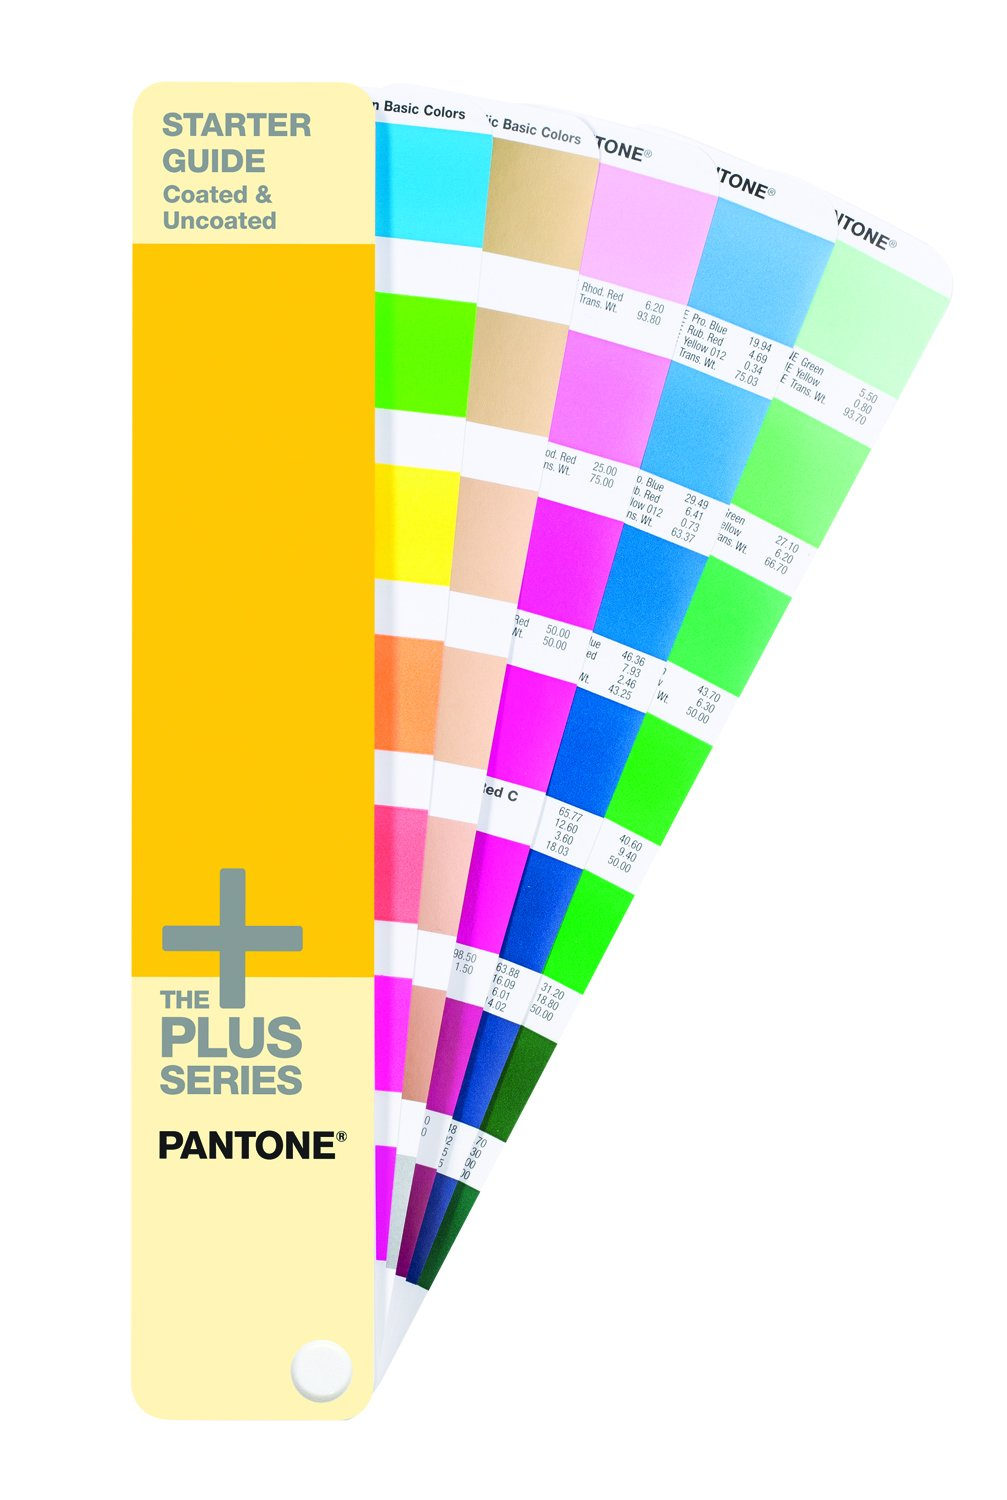 Amato PANTONE GG1511 Plus Series Starter Guide - - Amazon.com NU49